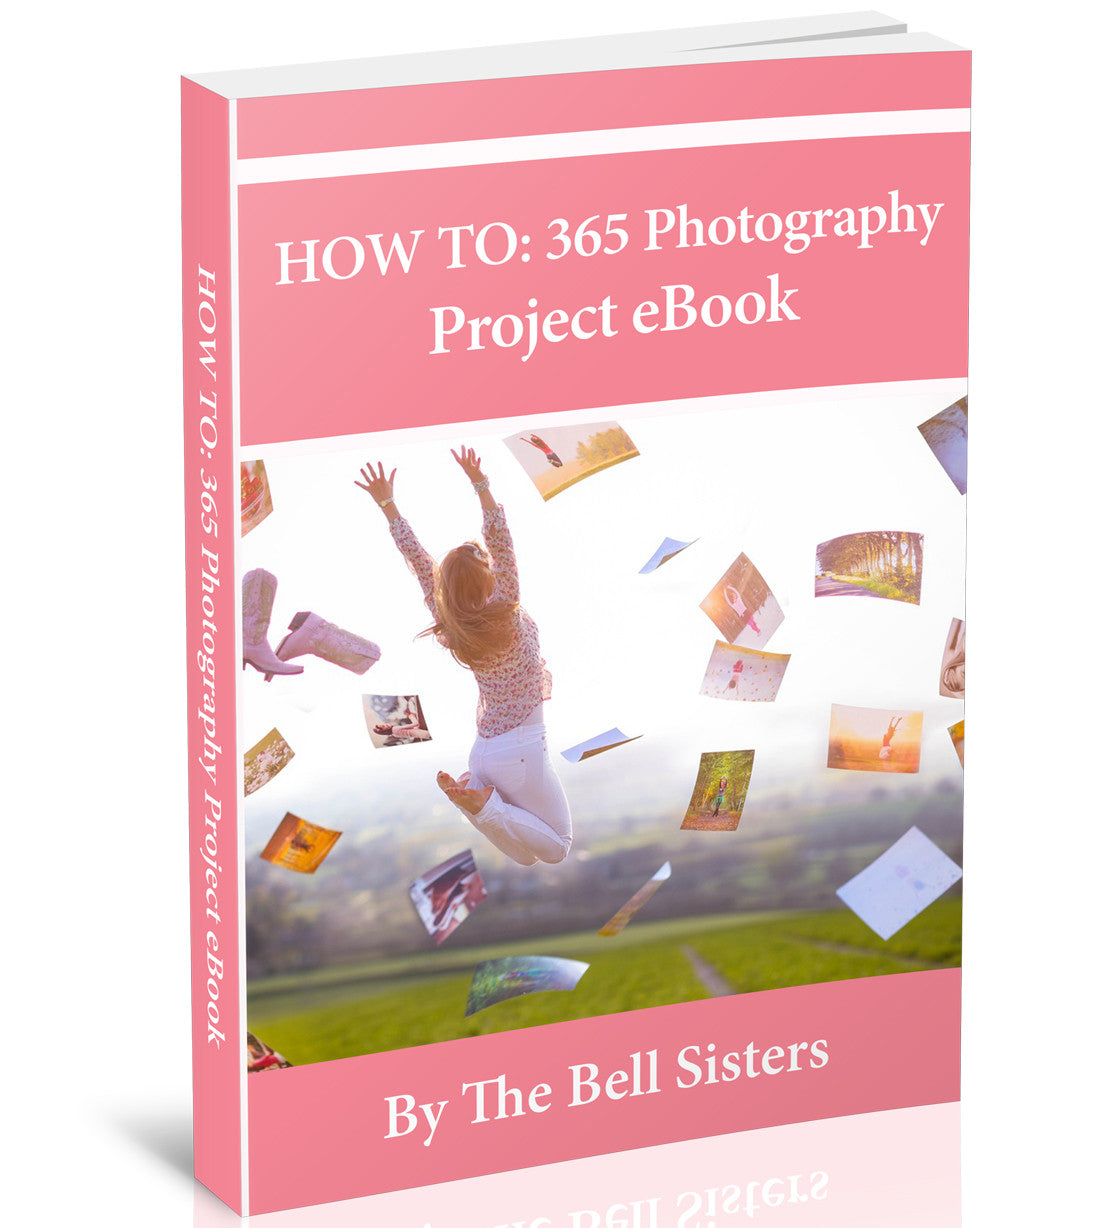 How To: 365 Photography Project eBook